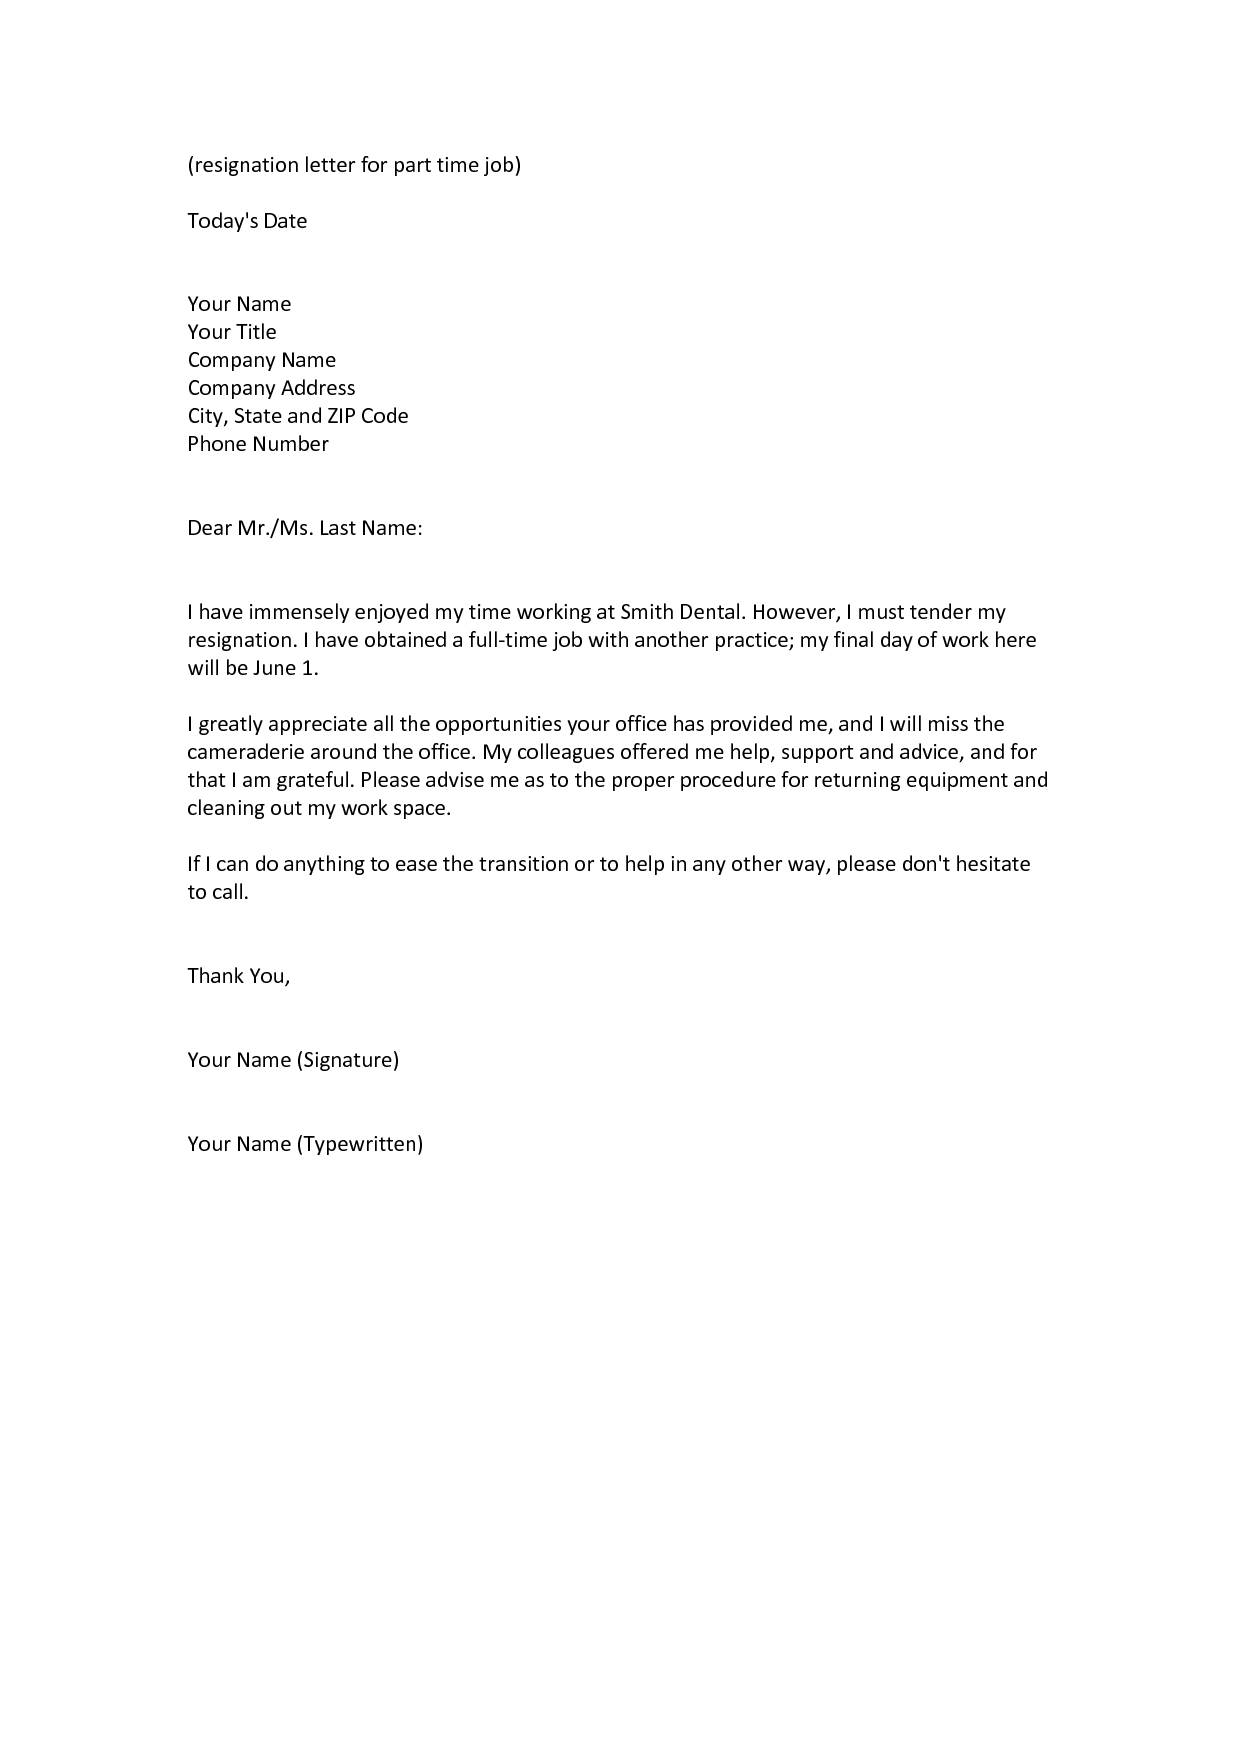 sample job resignation letter passionative co